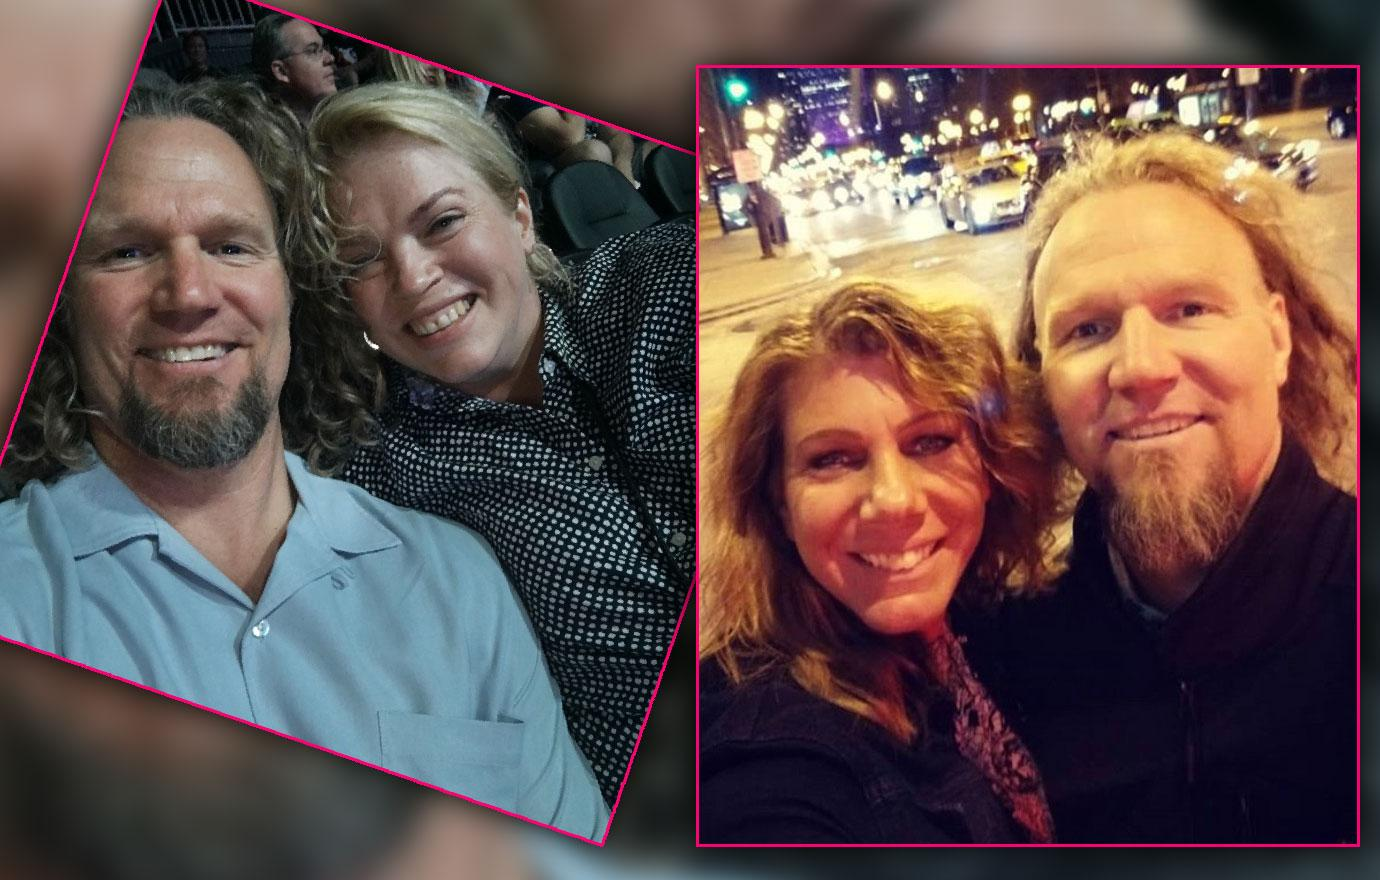 Sister Wives Janelle Brown Posts Love Selfie With Kody At U2 Concert